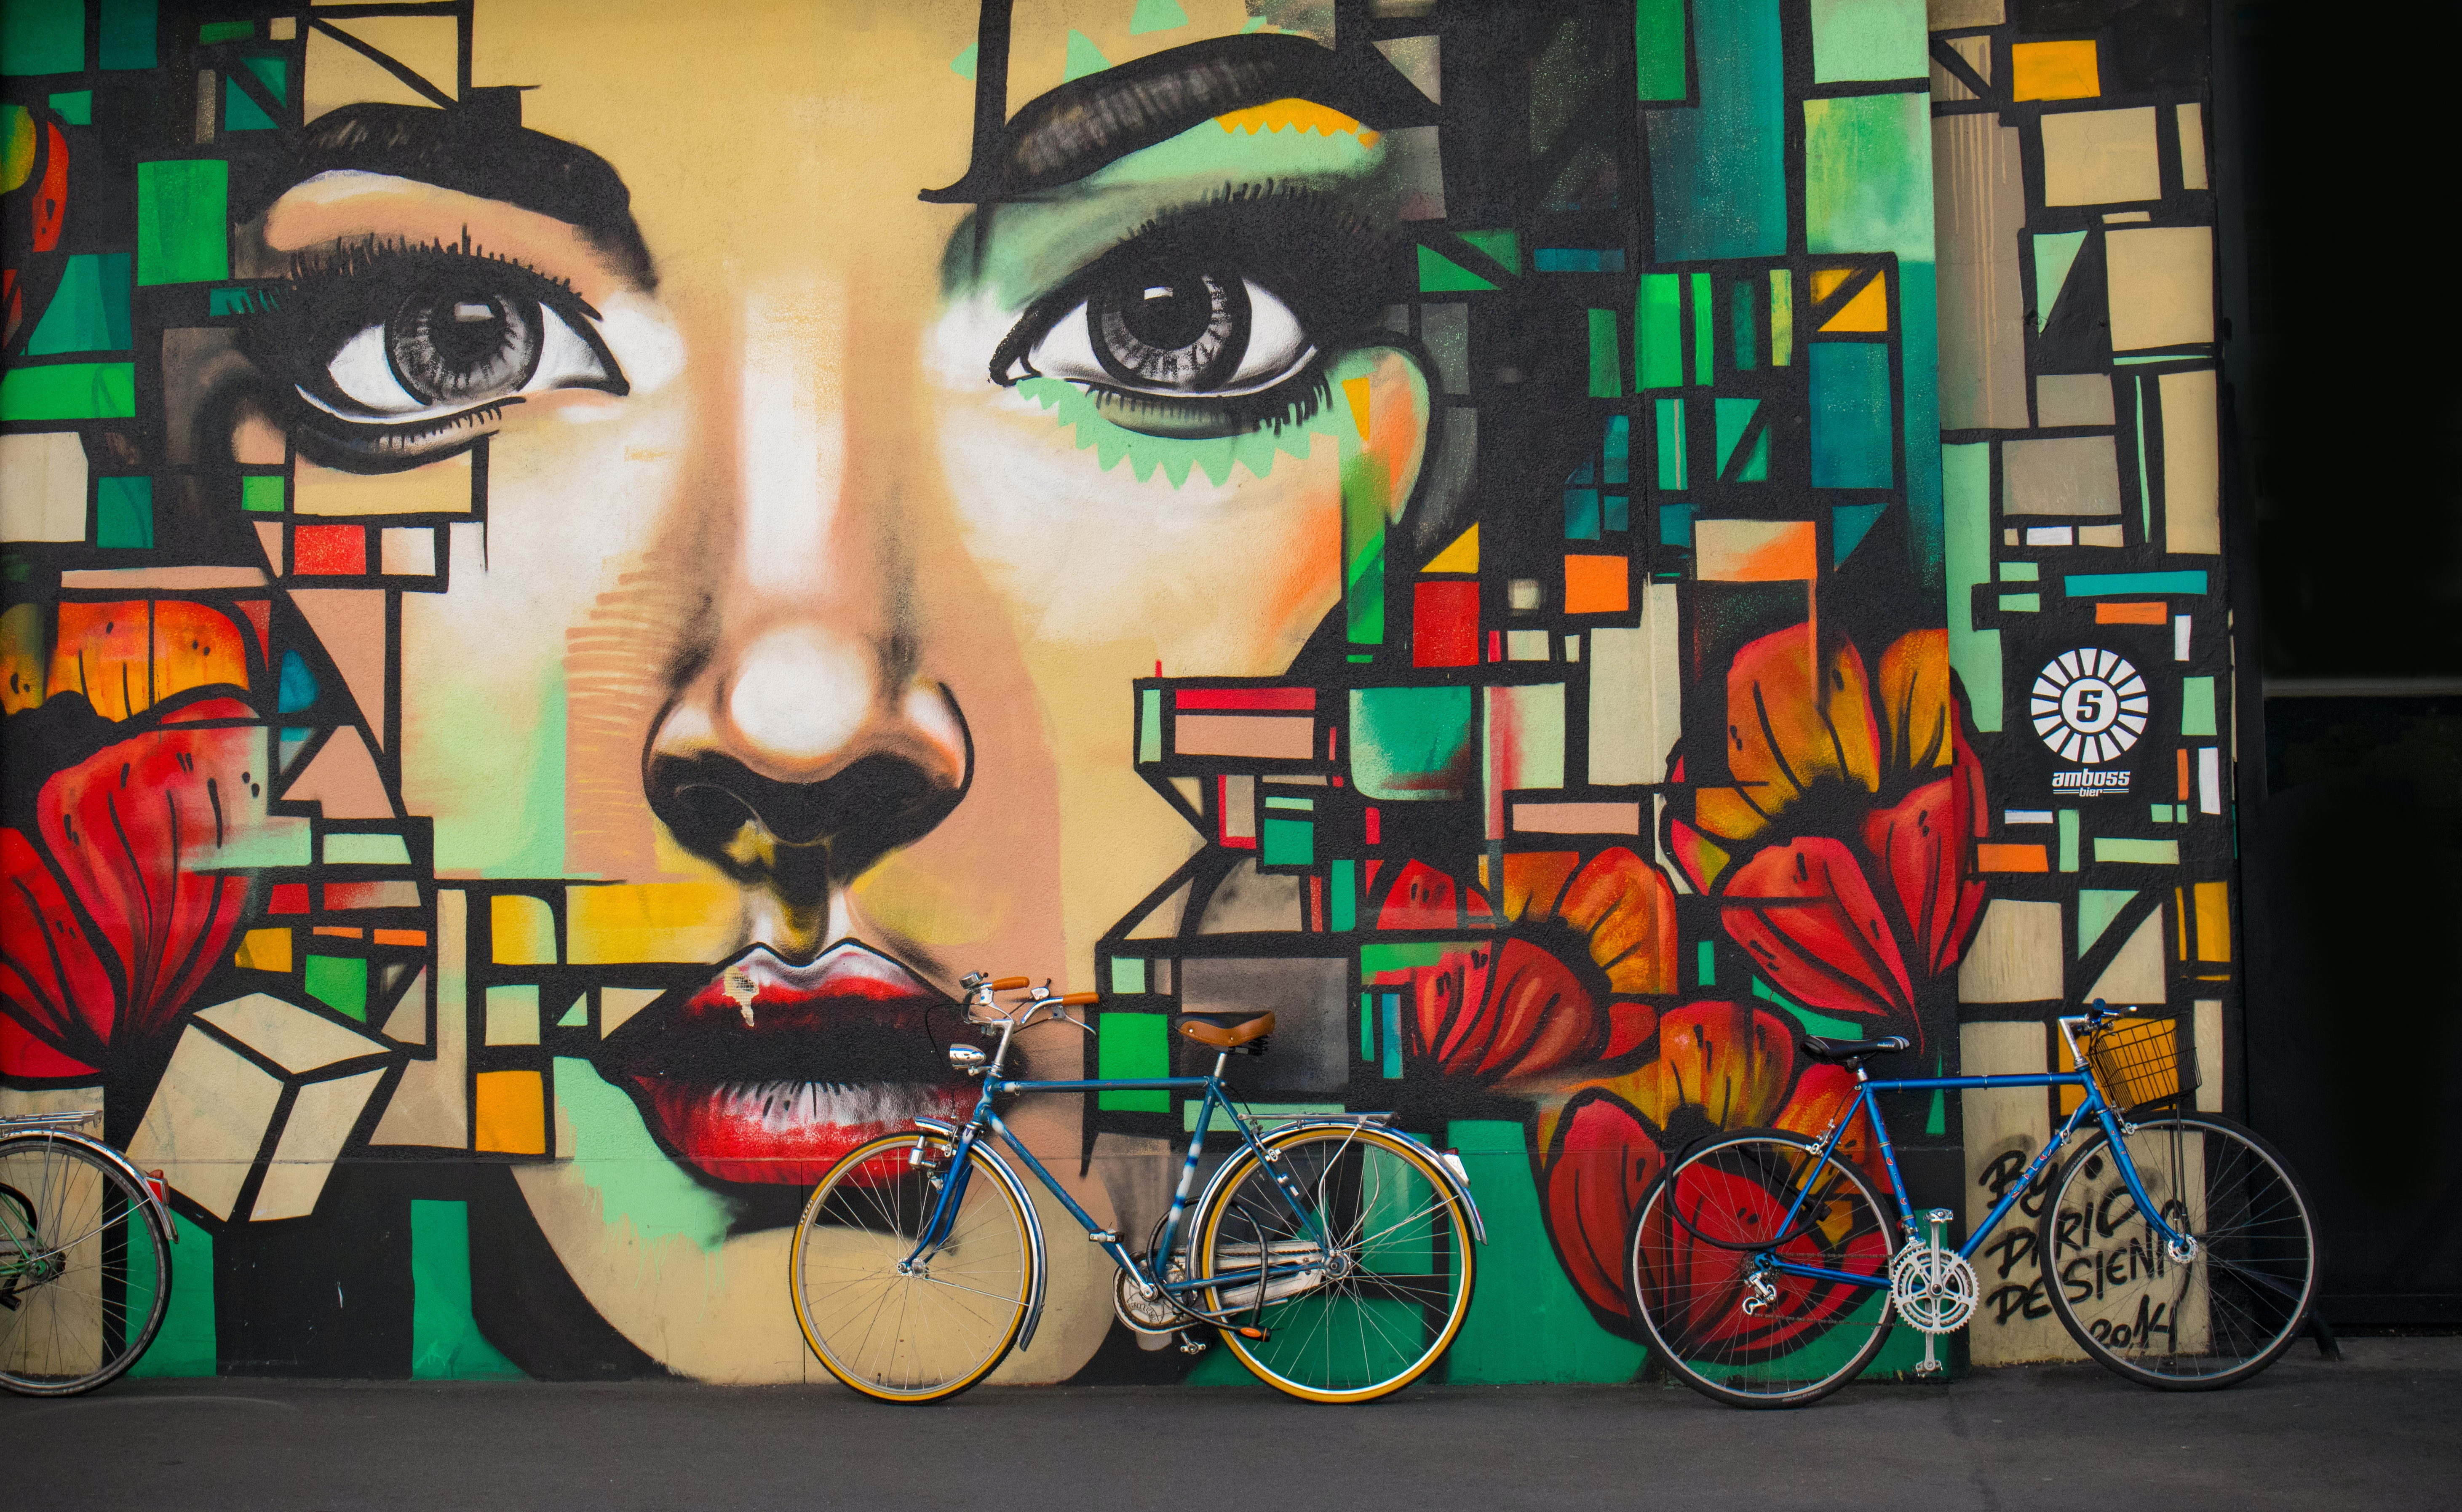 Large colorful graffiti mural of female face and cubism design on wall with bikes in Zürich